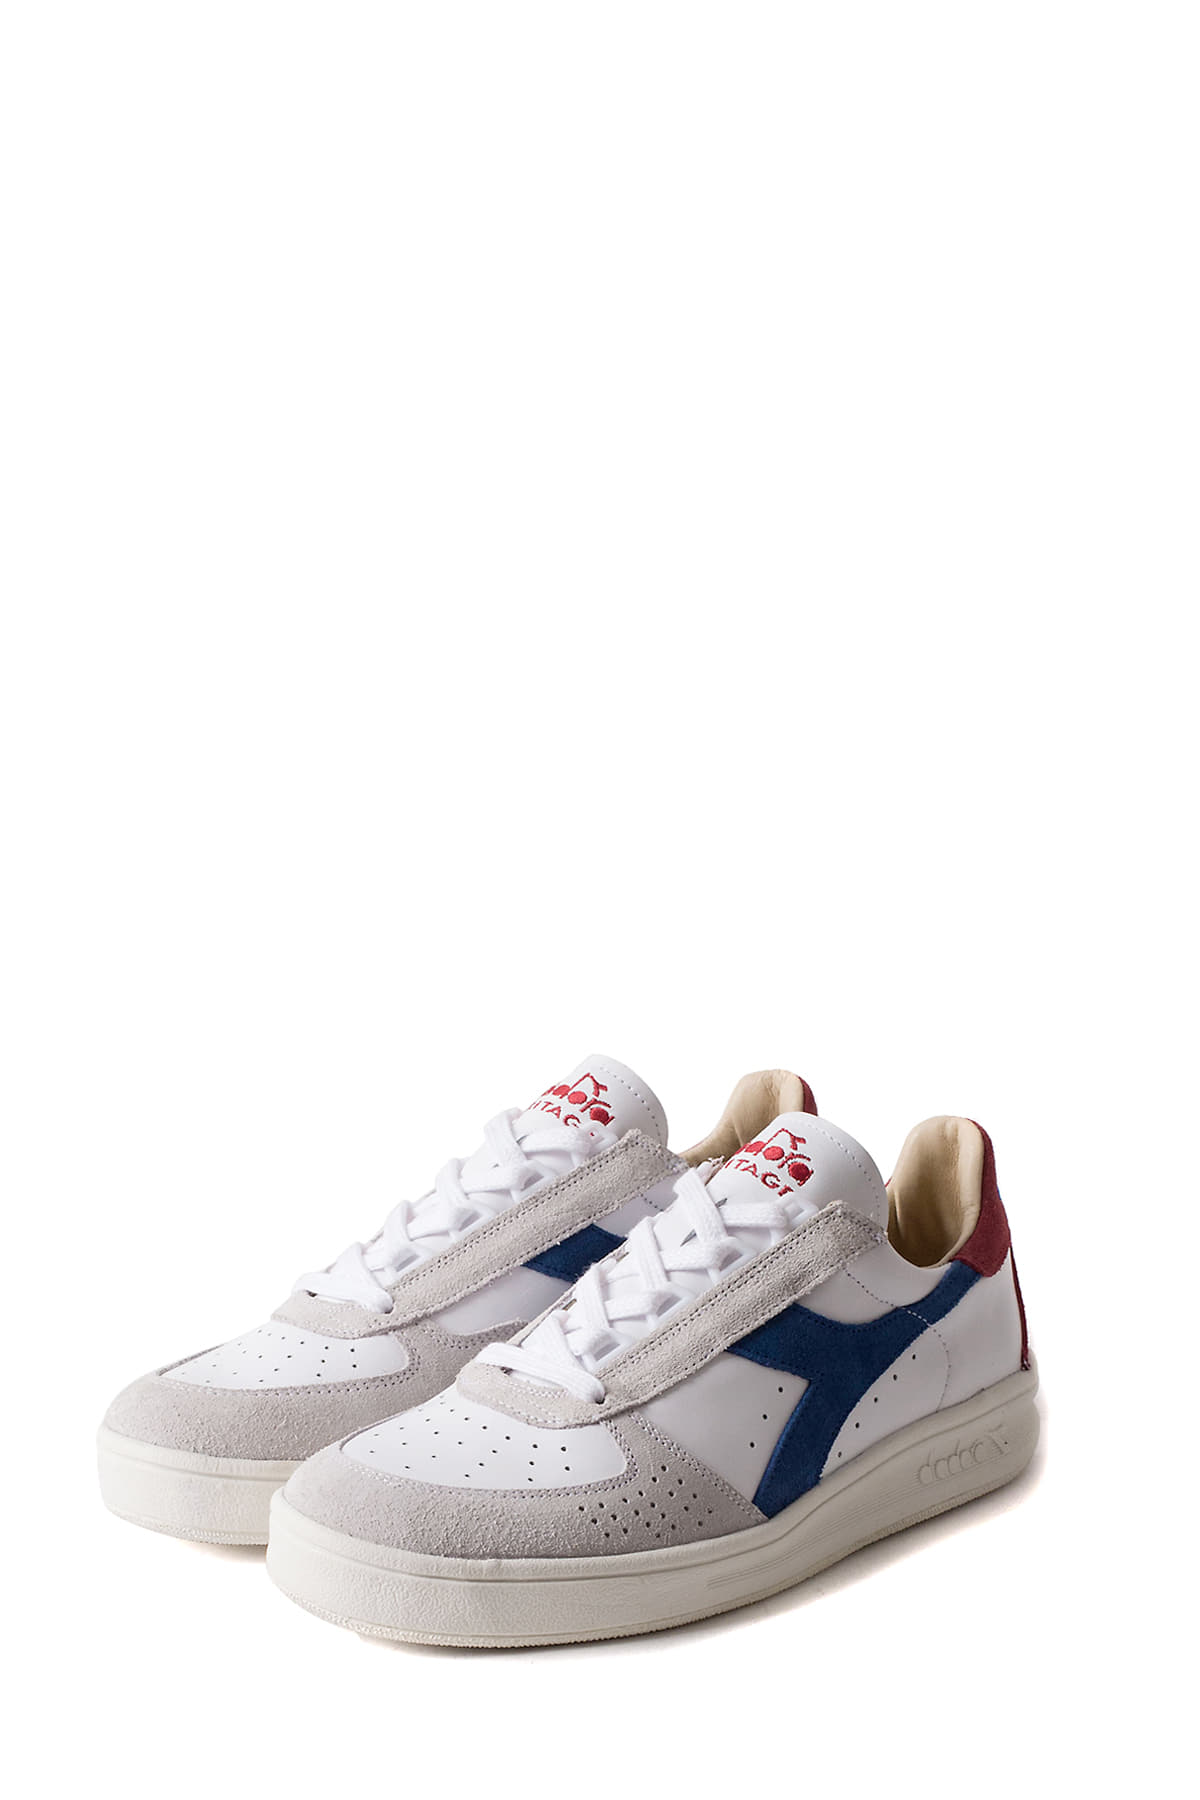 DIADORA : B.ELITE SL (White)